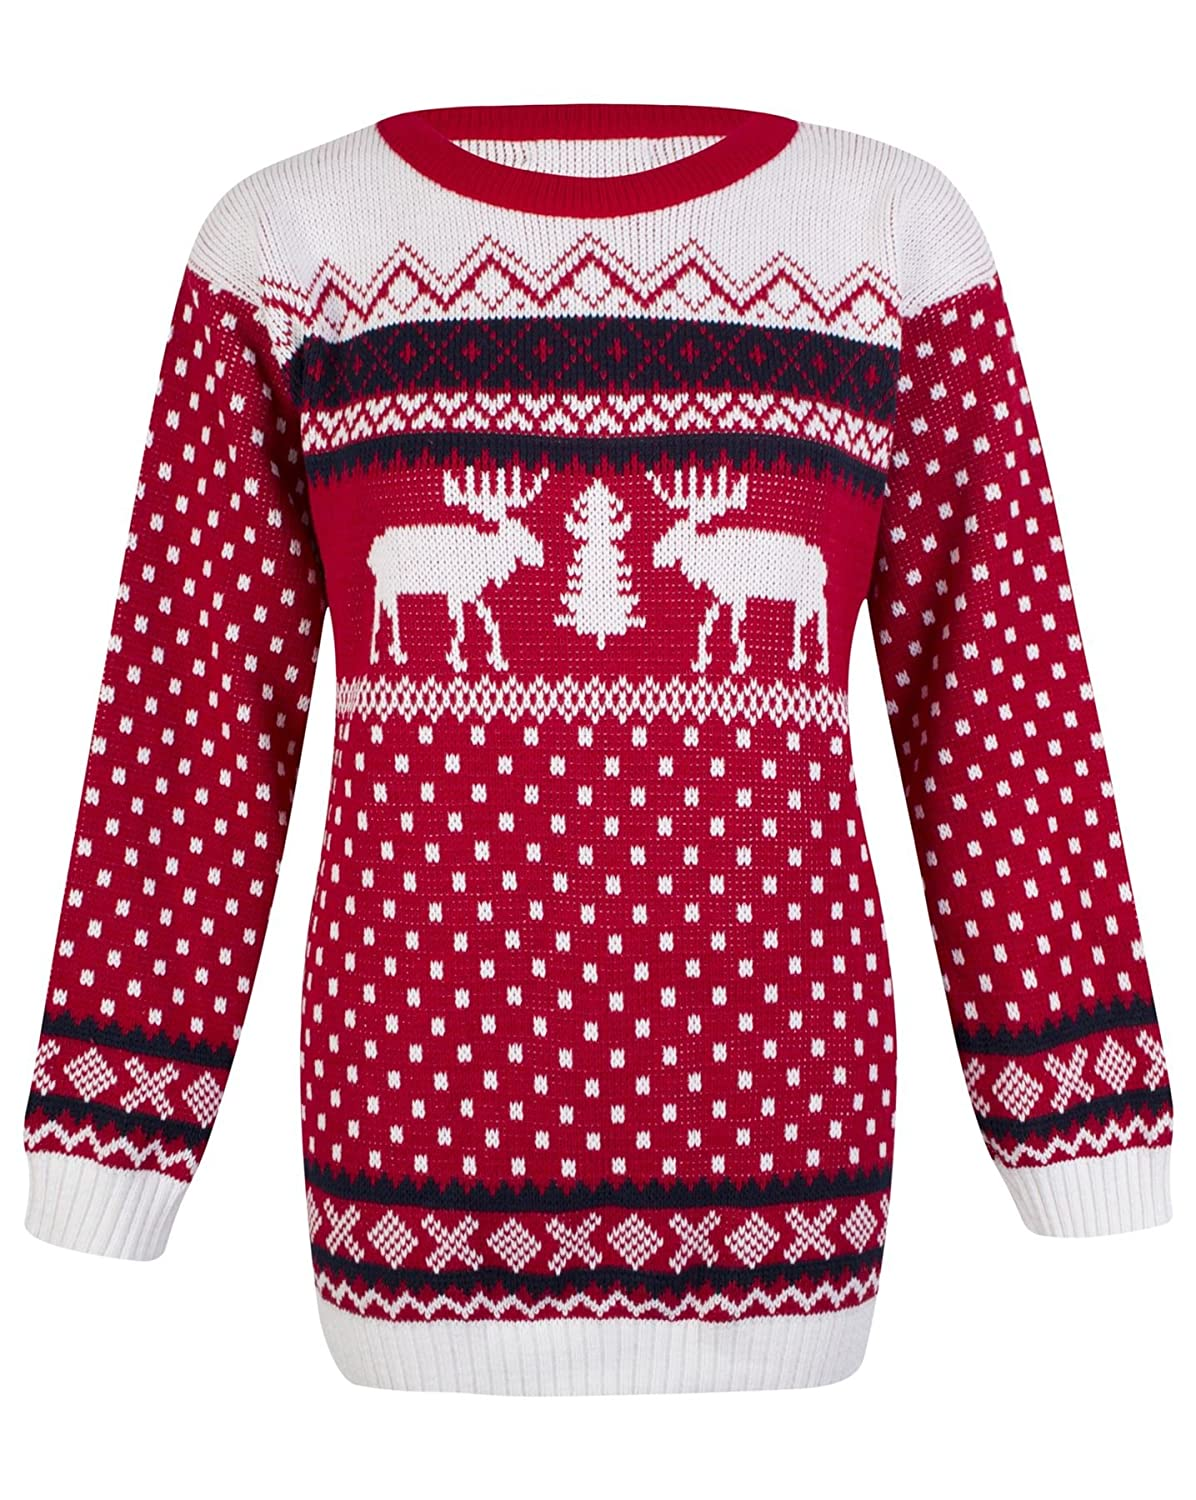 Amazon.com: OutofGas Clothing Women\'s Knitted Snowman Reindeer ...